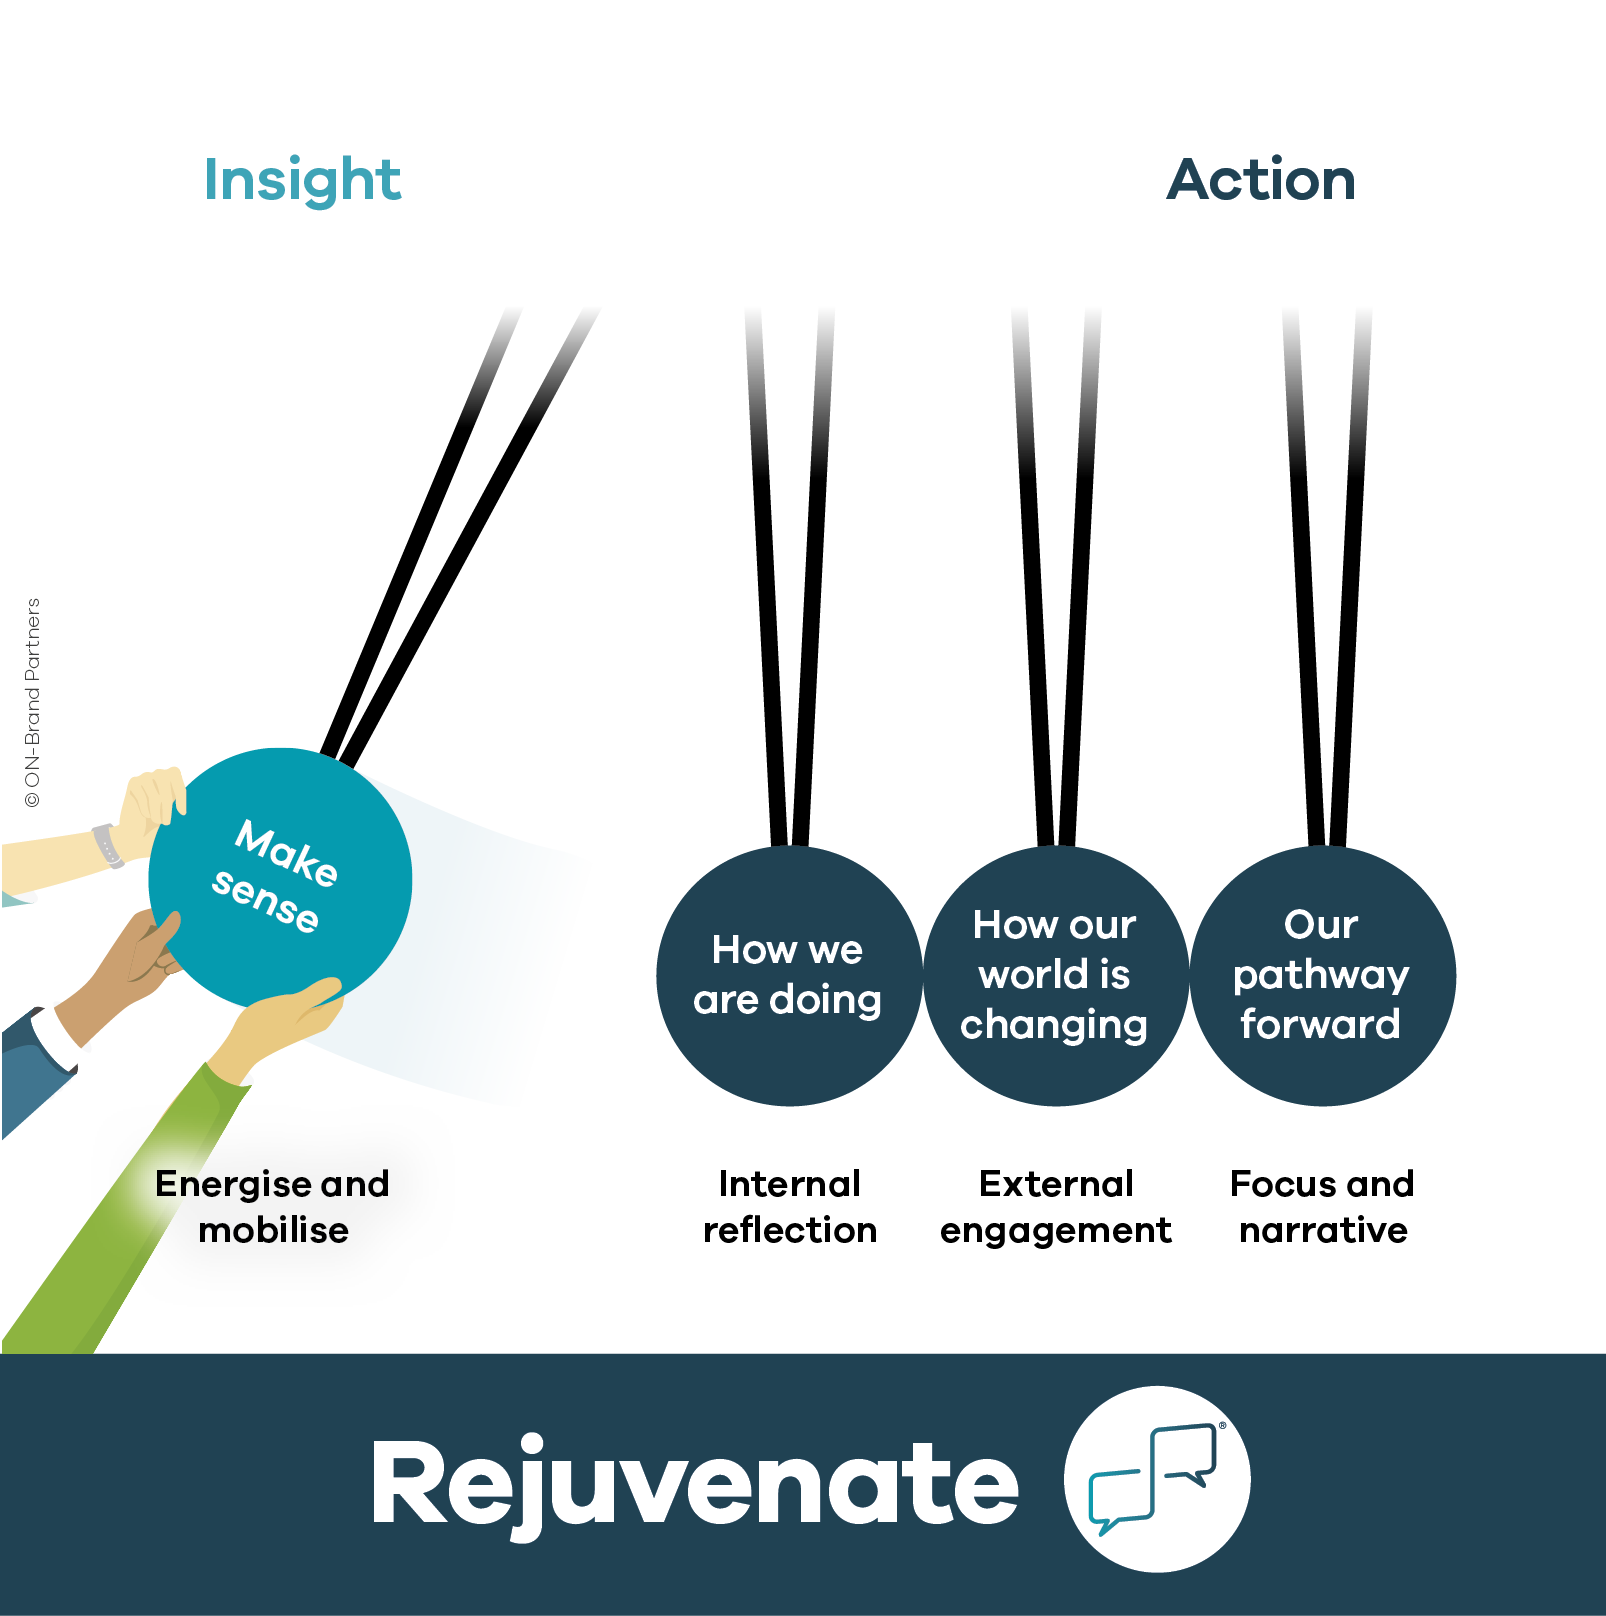 Rejuvenate model - insight into action